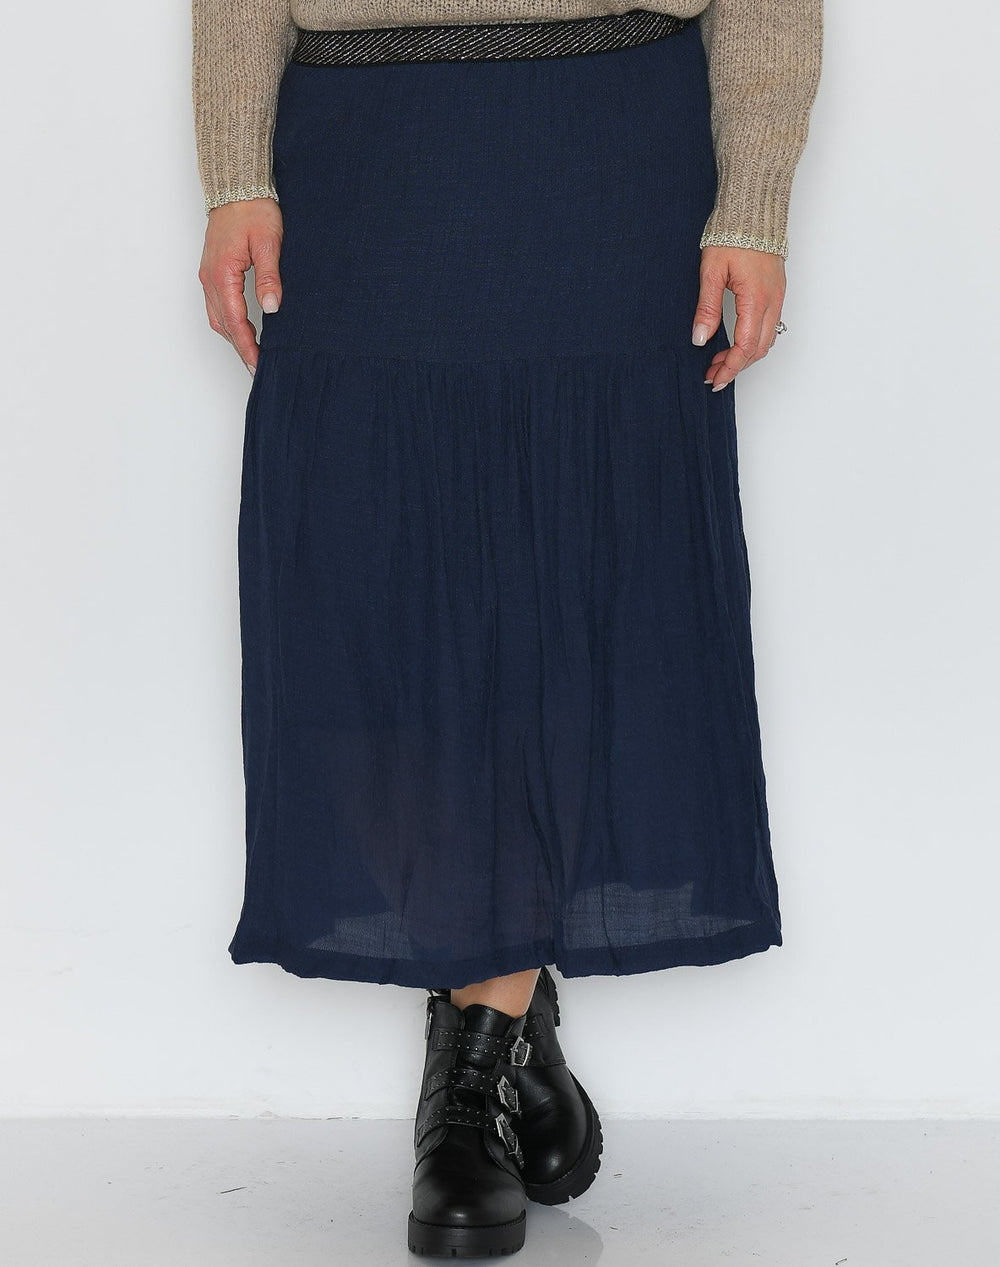 Luxzuz Karitas skirt dark navy - Online-Mode